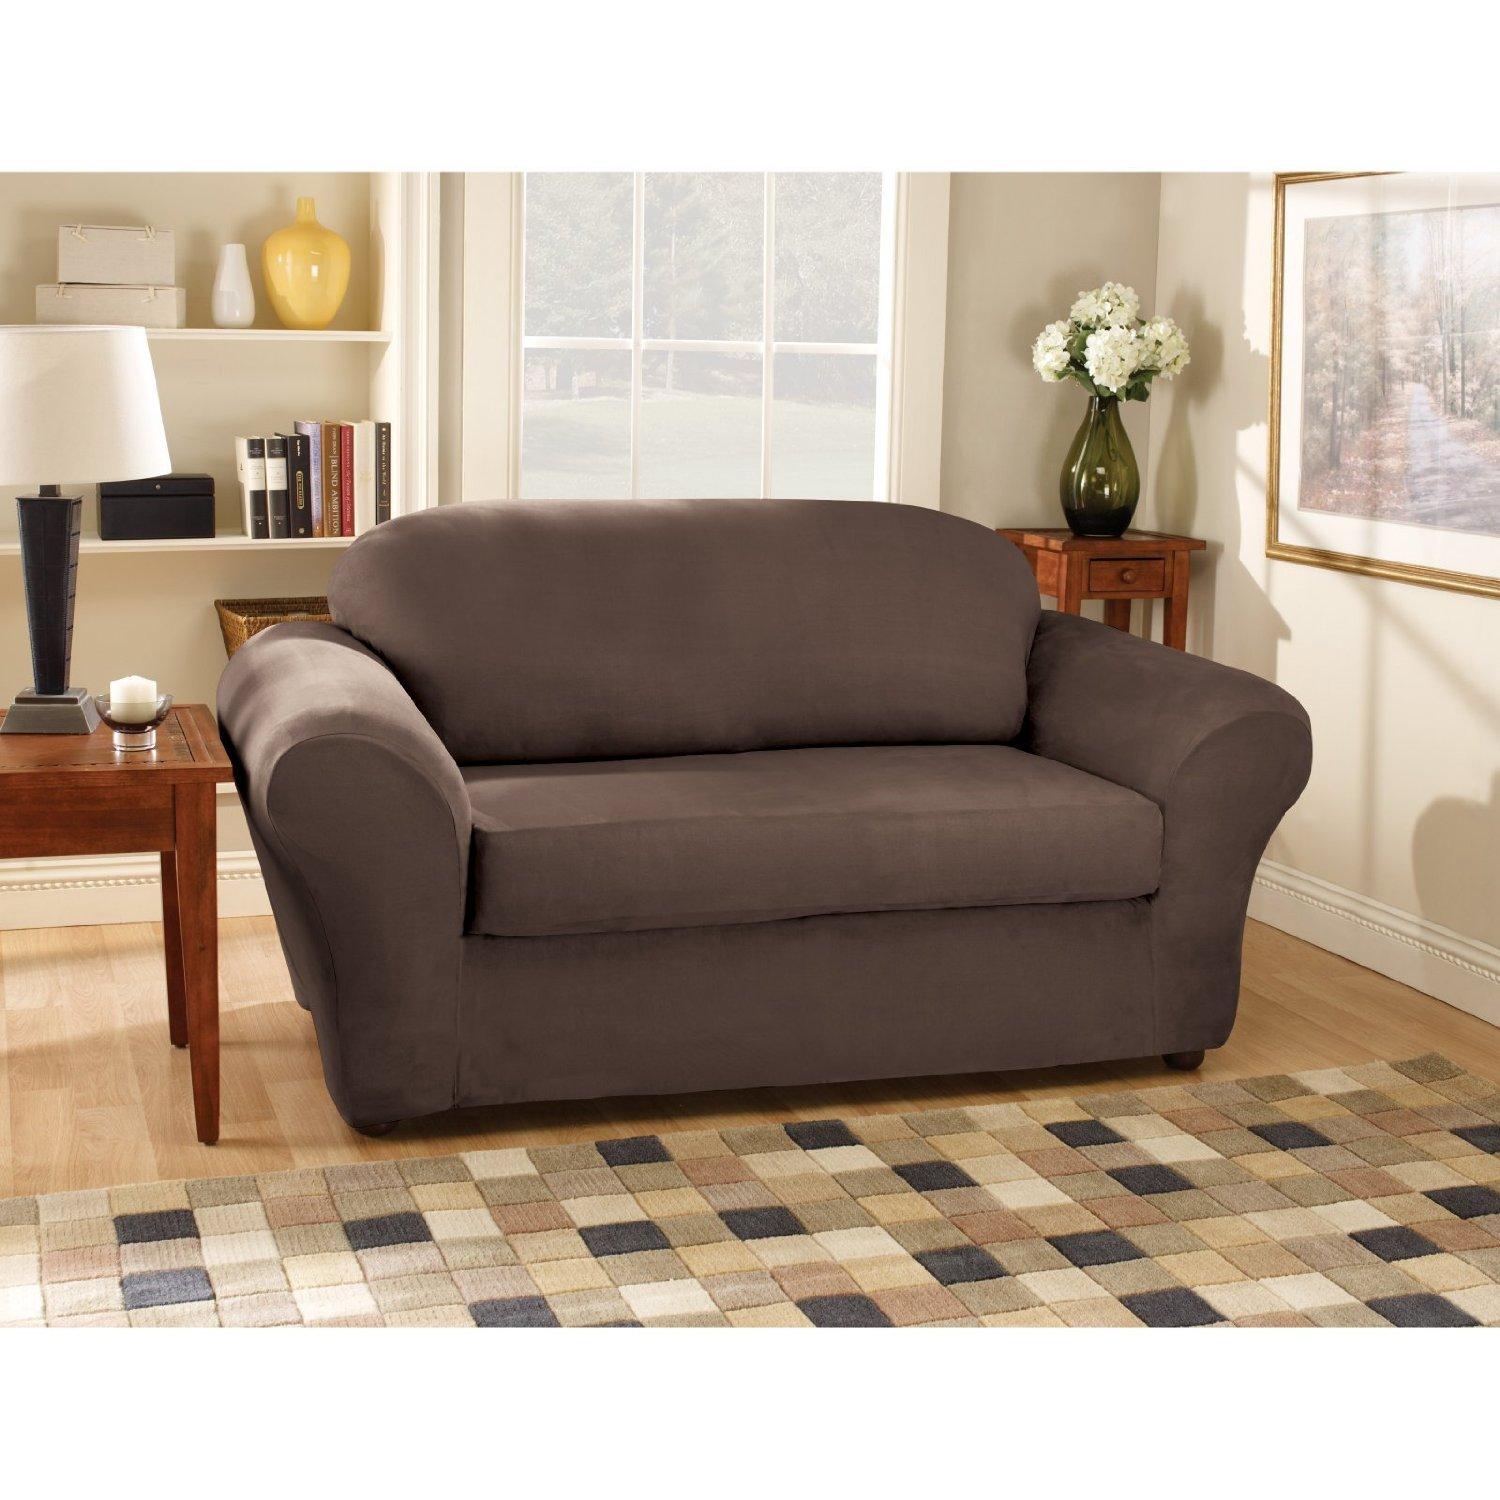 Where to buy couch covers cheap and stylish couch sofa for Furniture covers